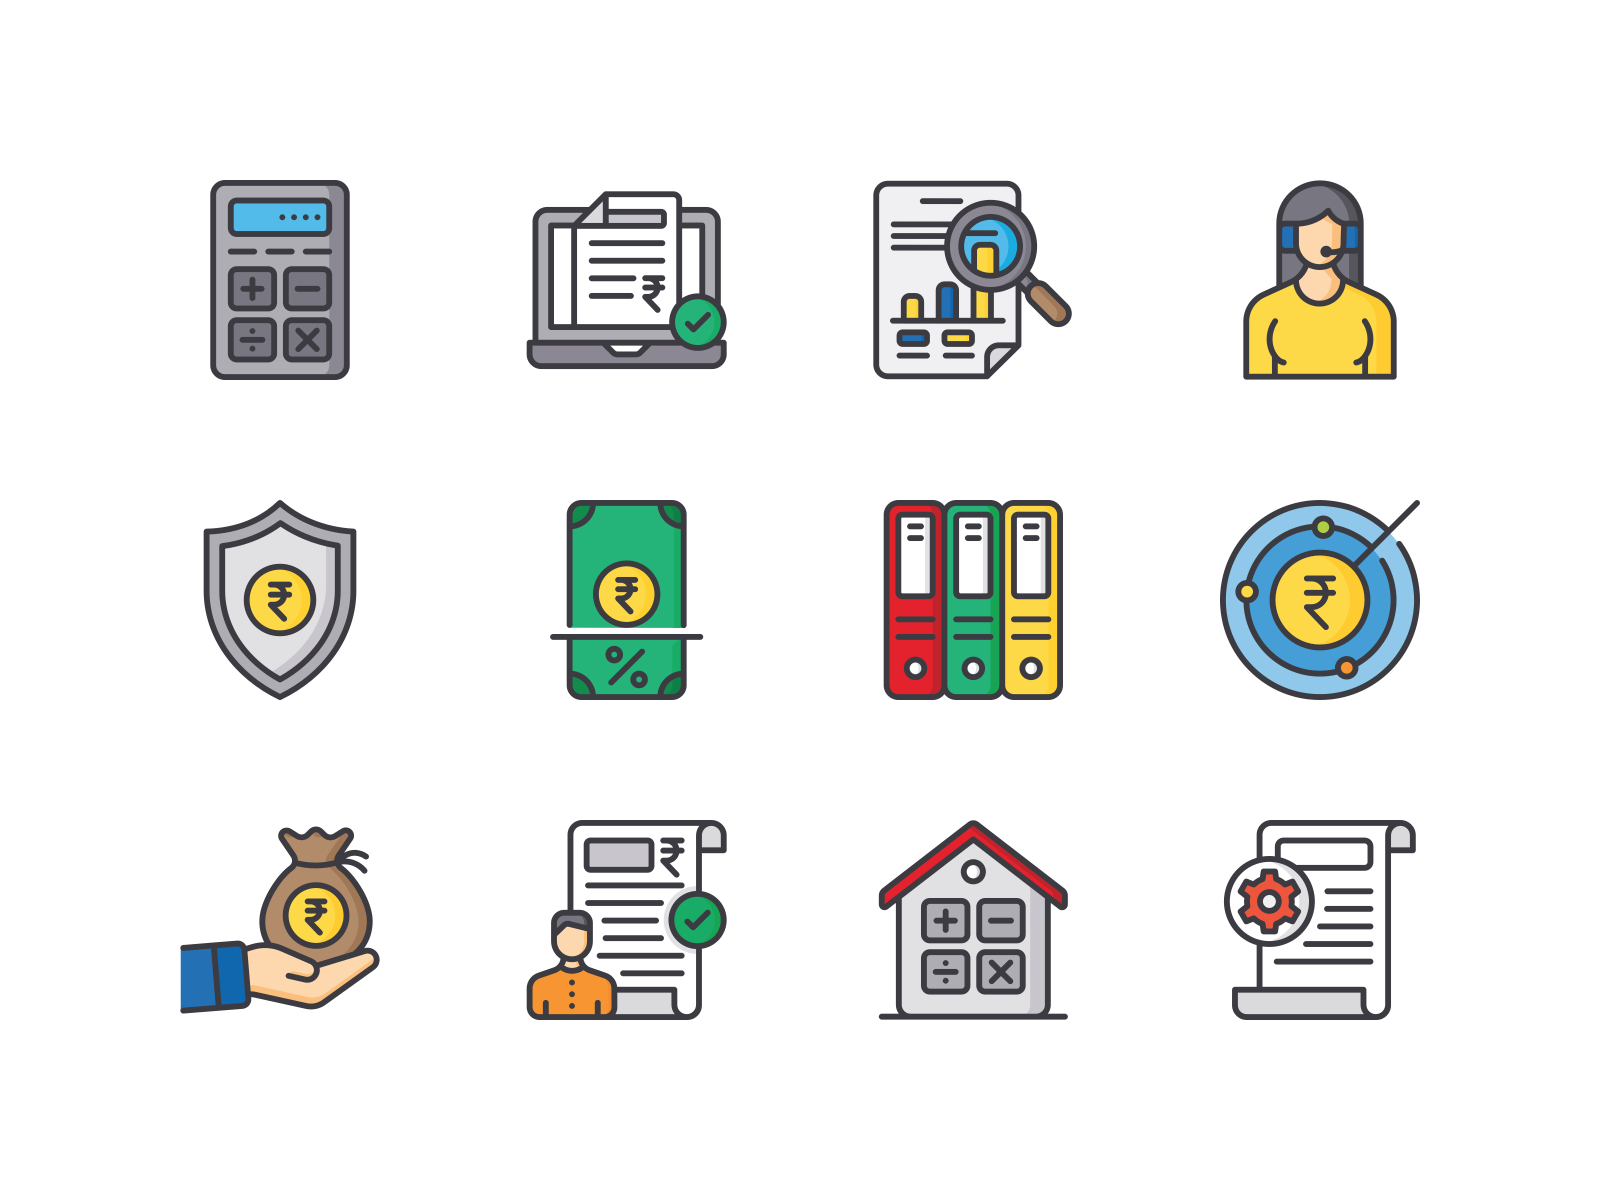 Tax Services Icon pack loan tax services tax rupee currency icons pack icons iconography icon